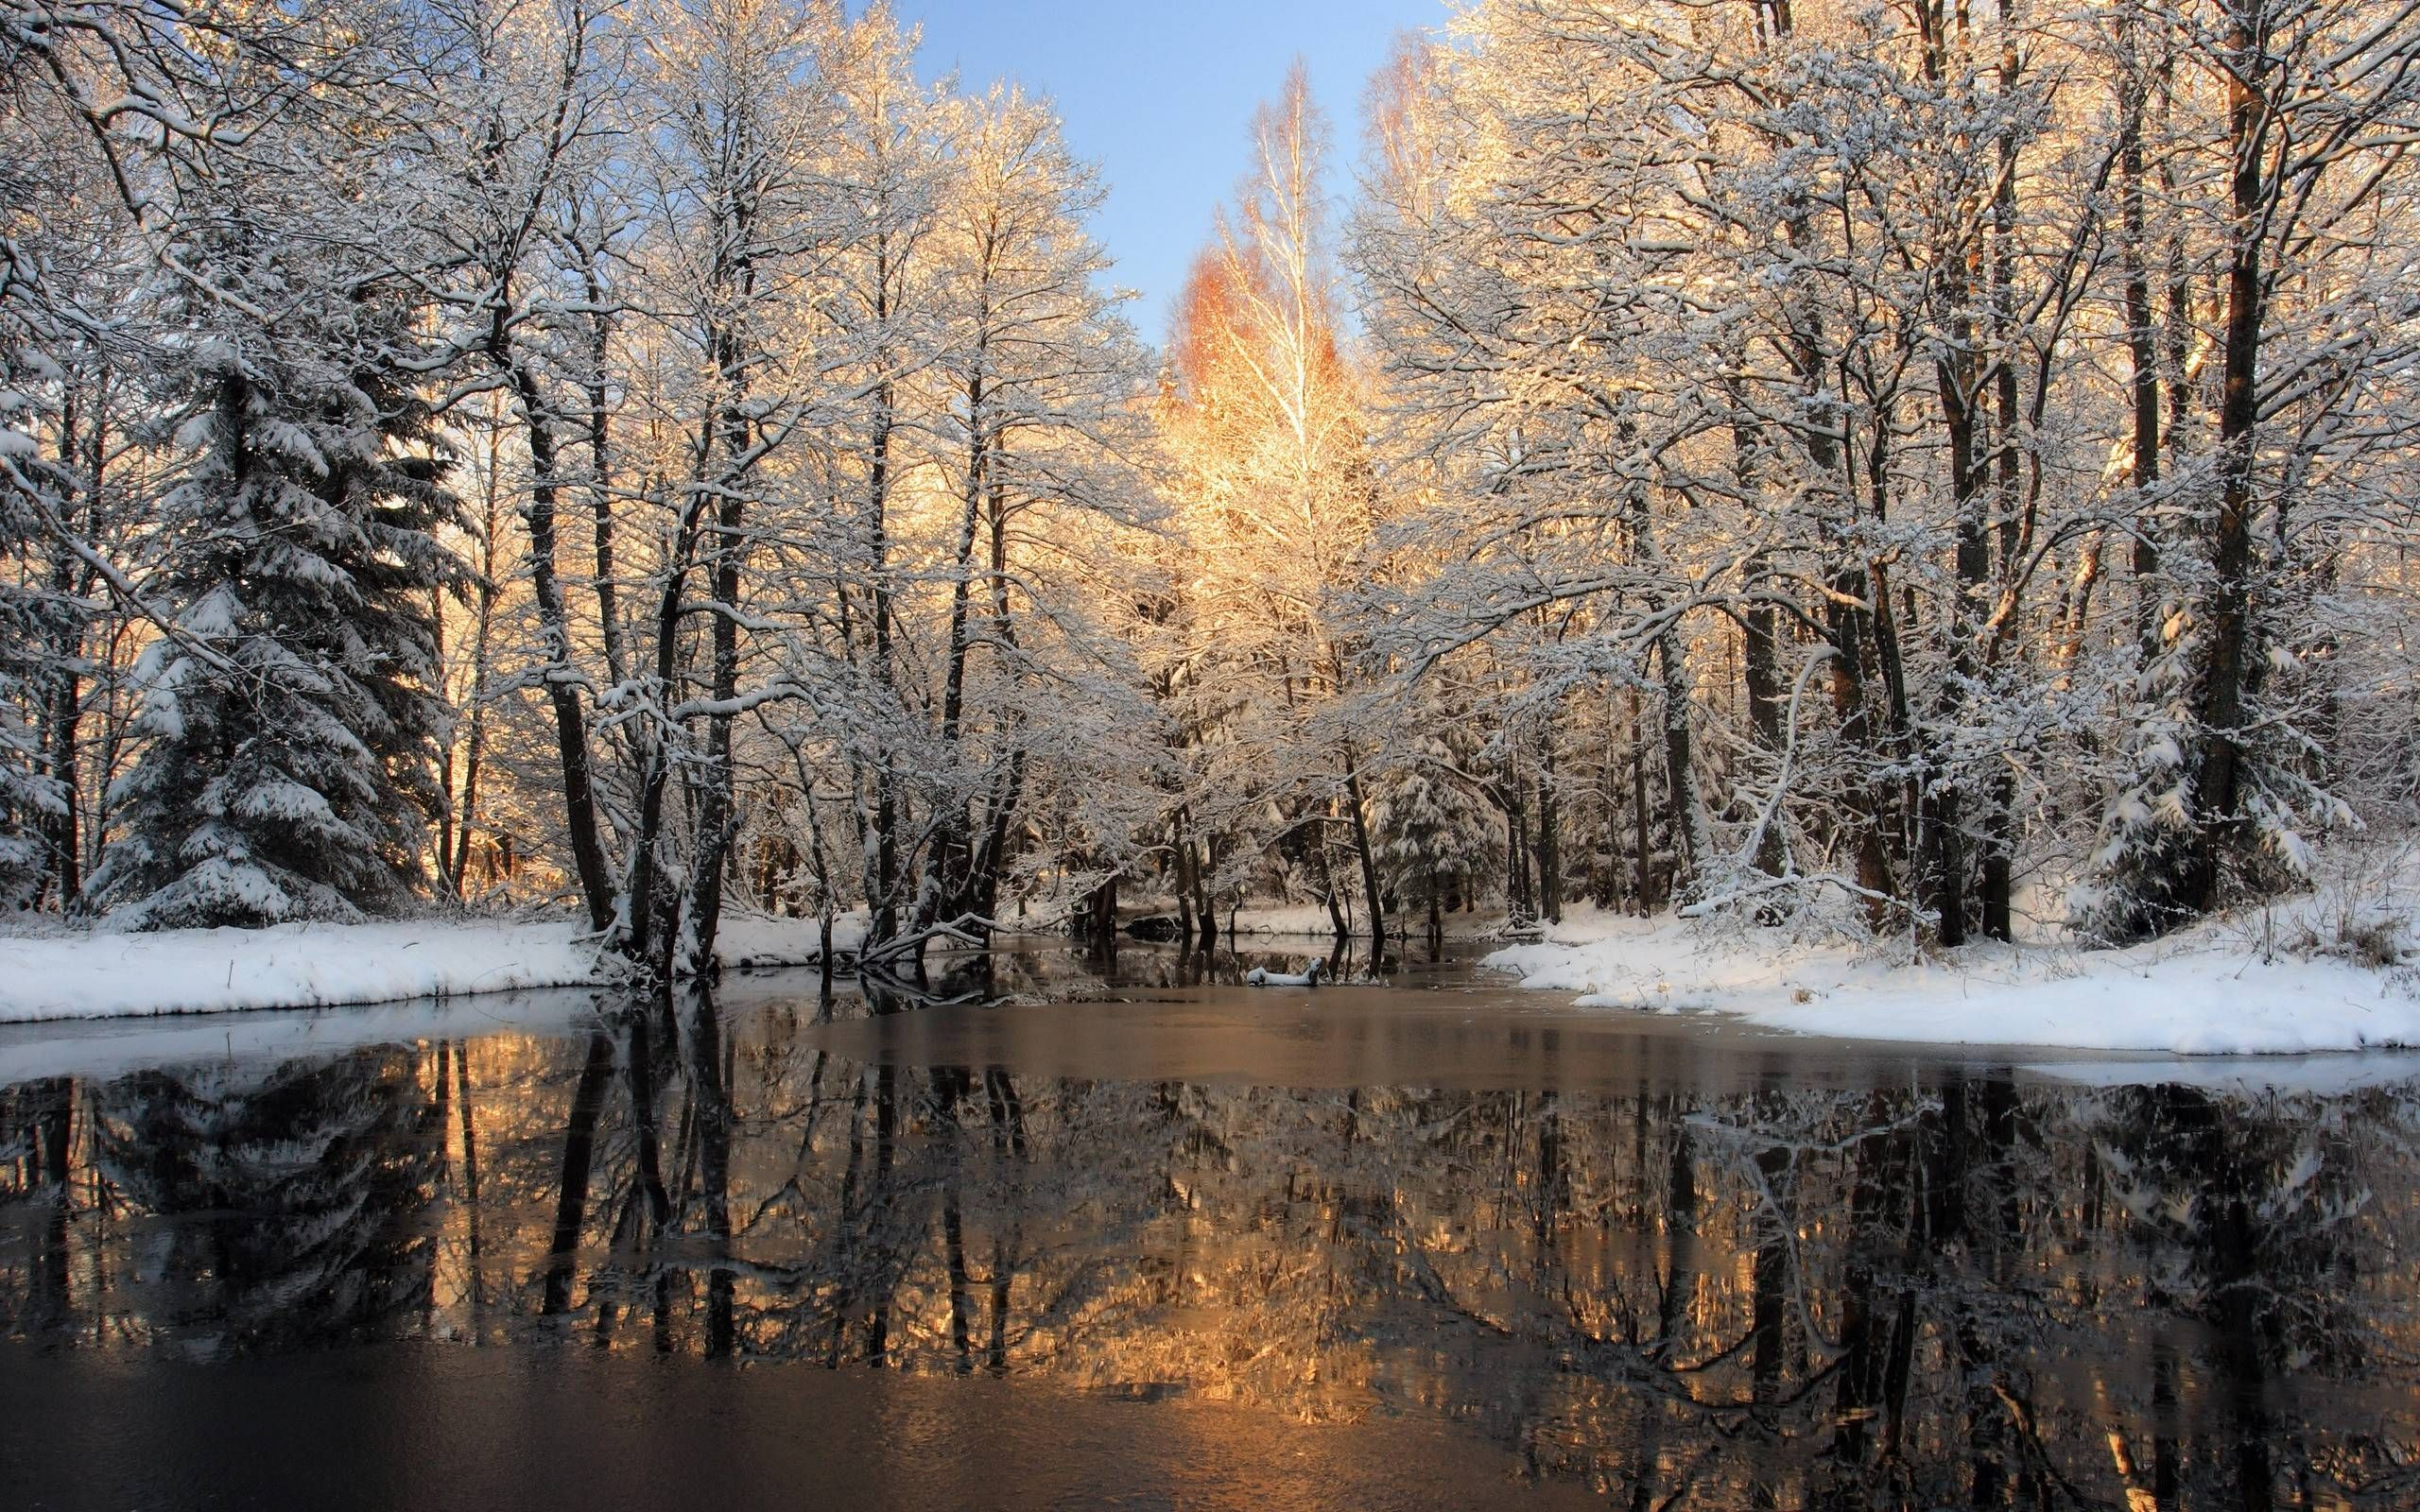 Winter Nature Wallpapers Background With Hd Wallpaper Kemecer Com Winter Desktop Background Winter Wallpaper Winter Scenes